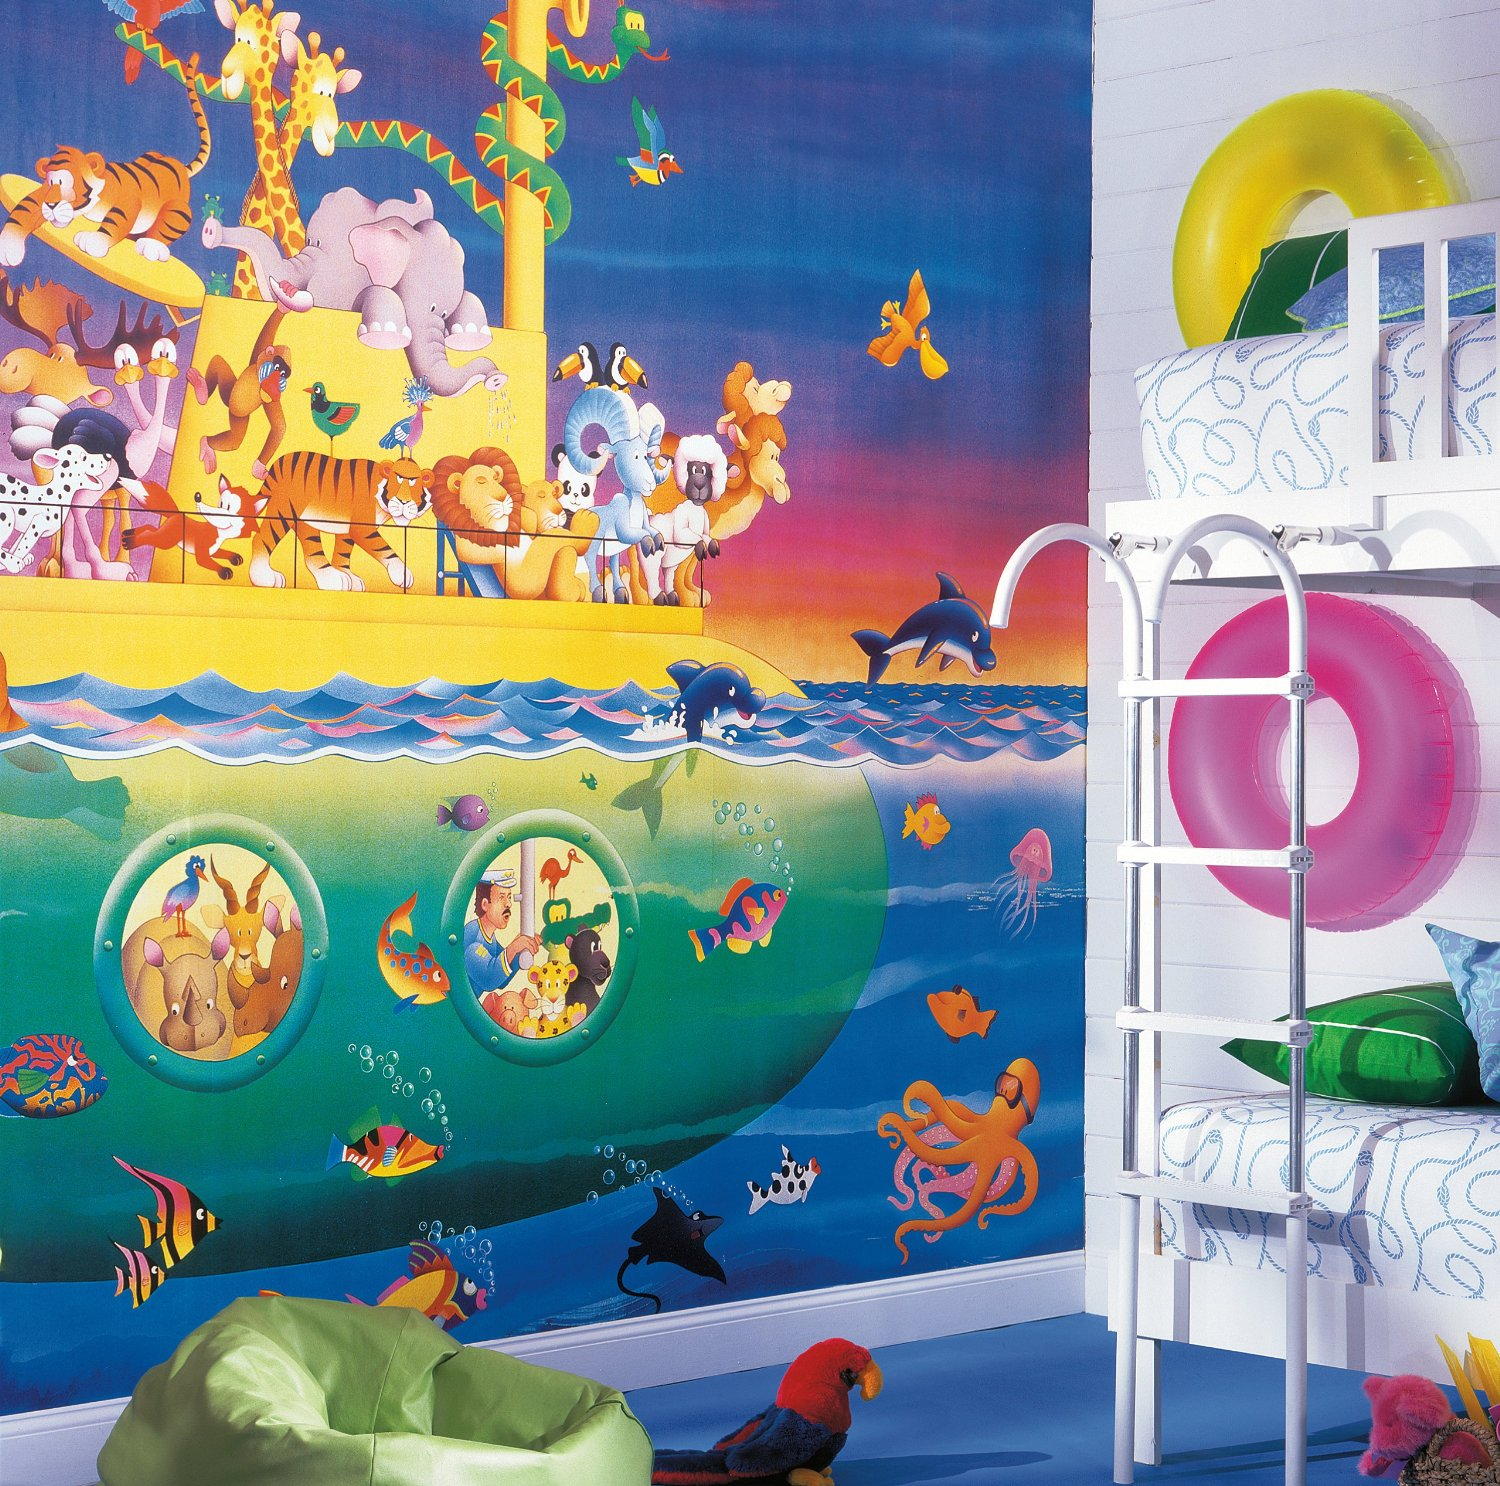 Noah's Sub Wall Mural roomsetting